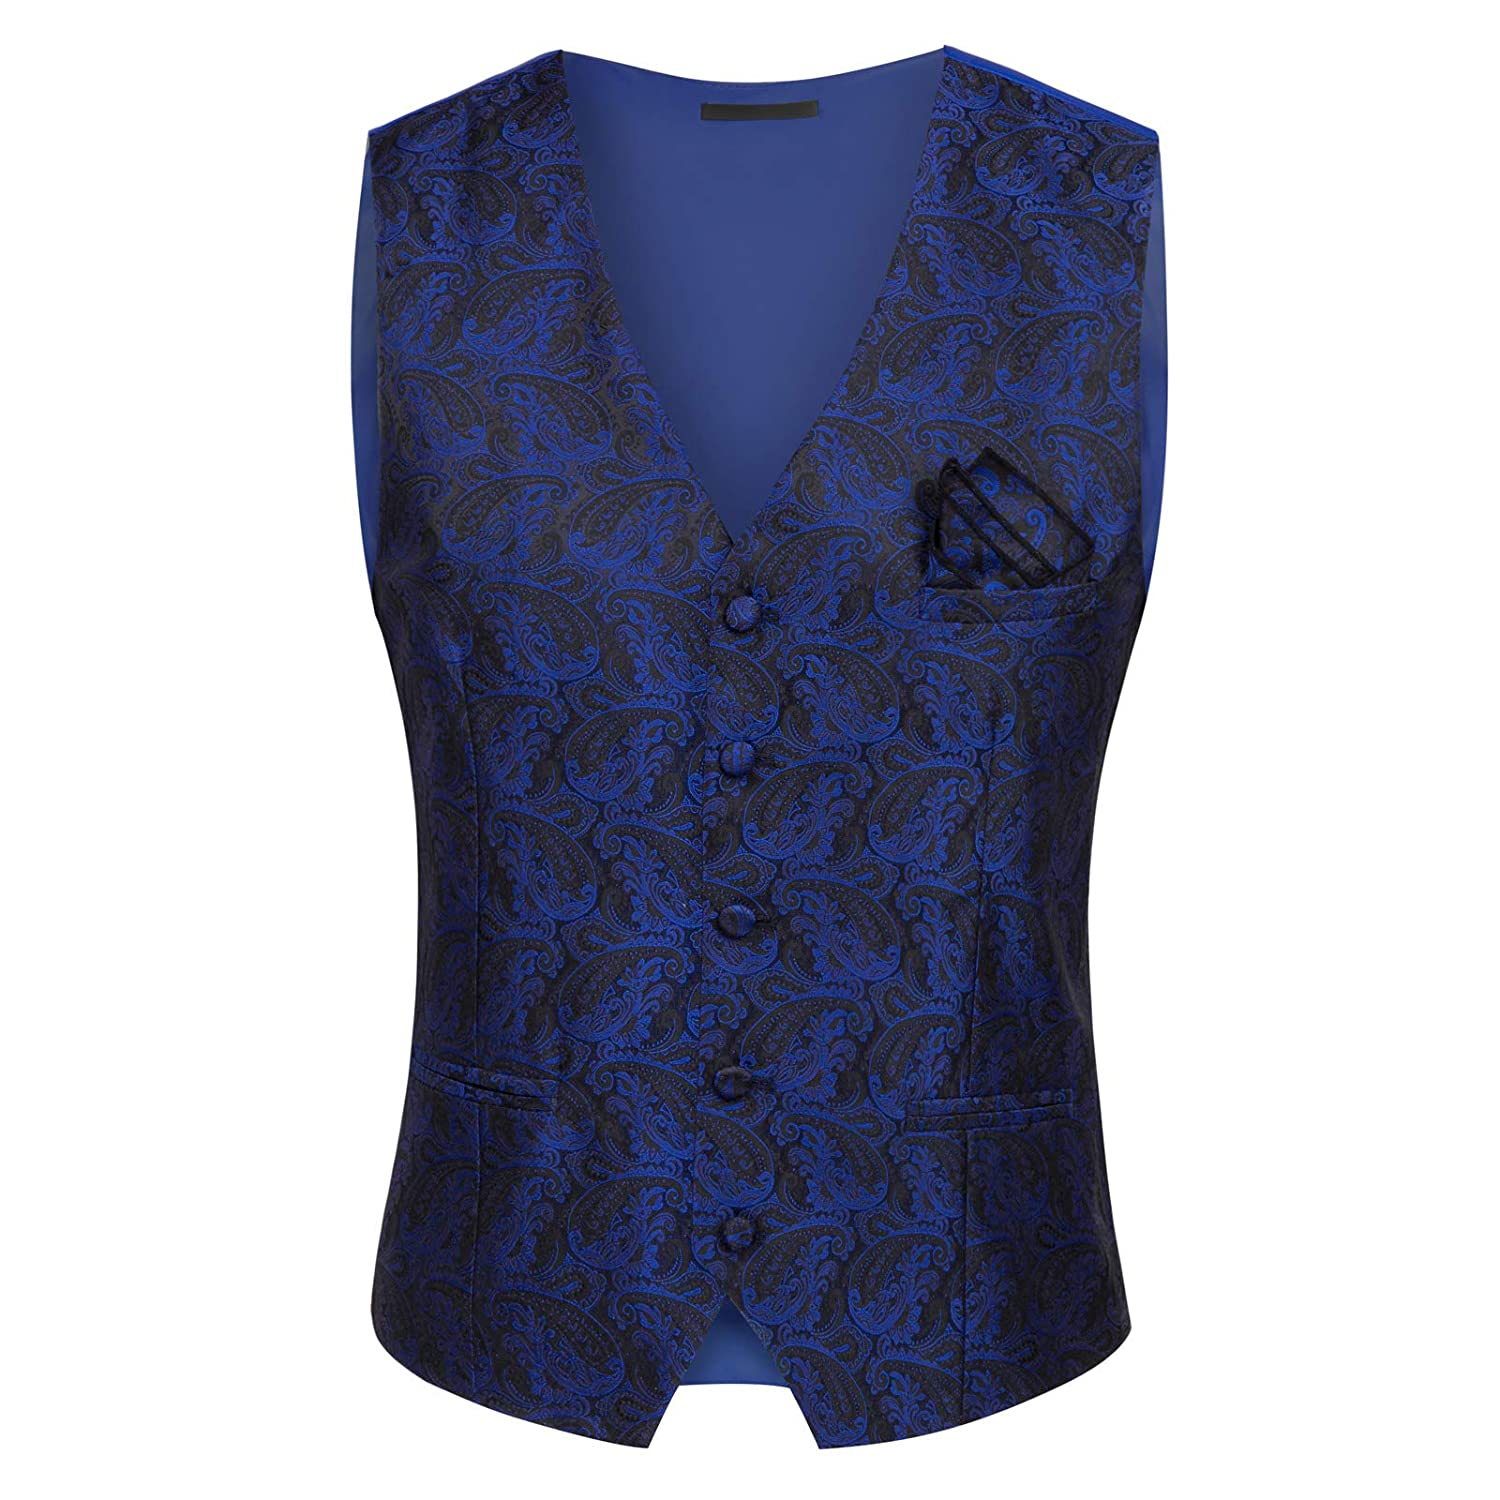 Victorian Men's Clothing, Fashion – 1840 to 1900 PAUL JONES Mens Gothic Steampunk Vest Waistcoat Victorian Jacquard Tailcoat $27.99 AT vintagedancer.com